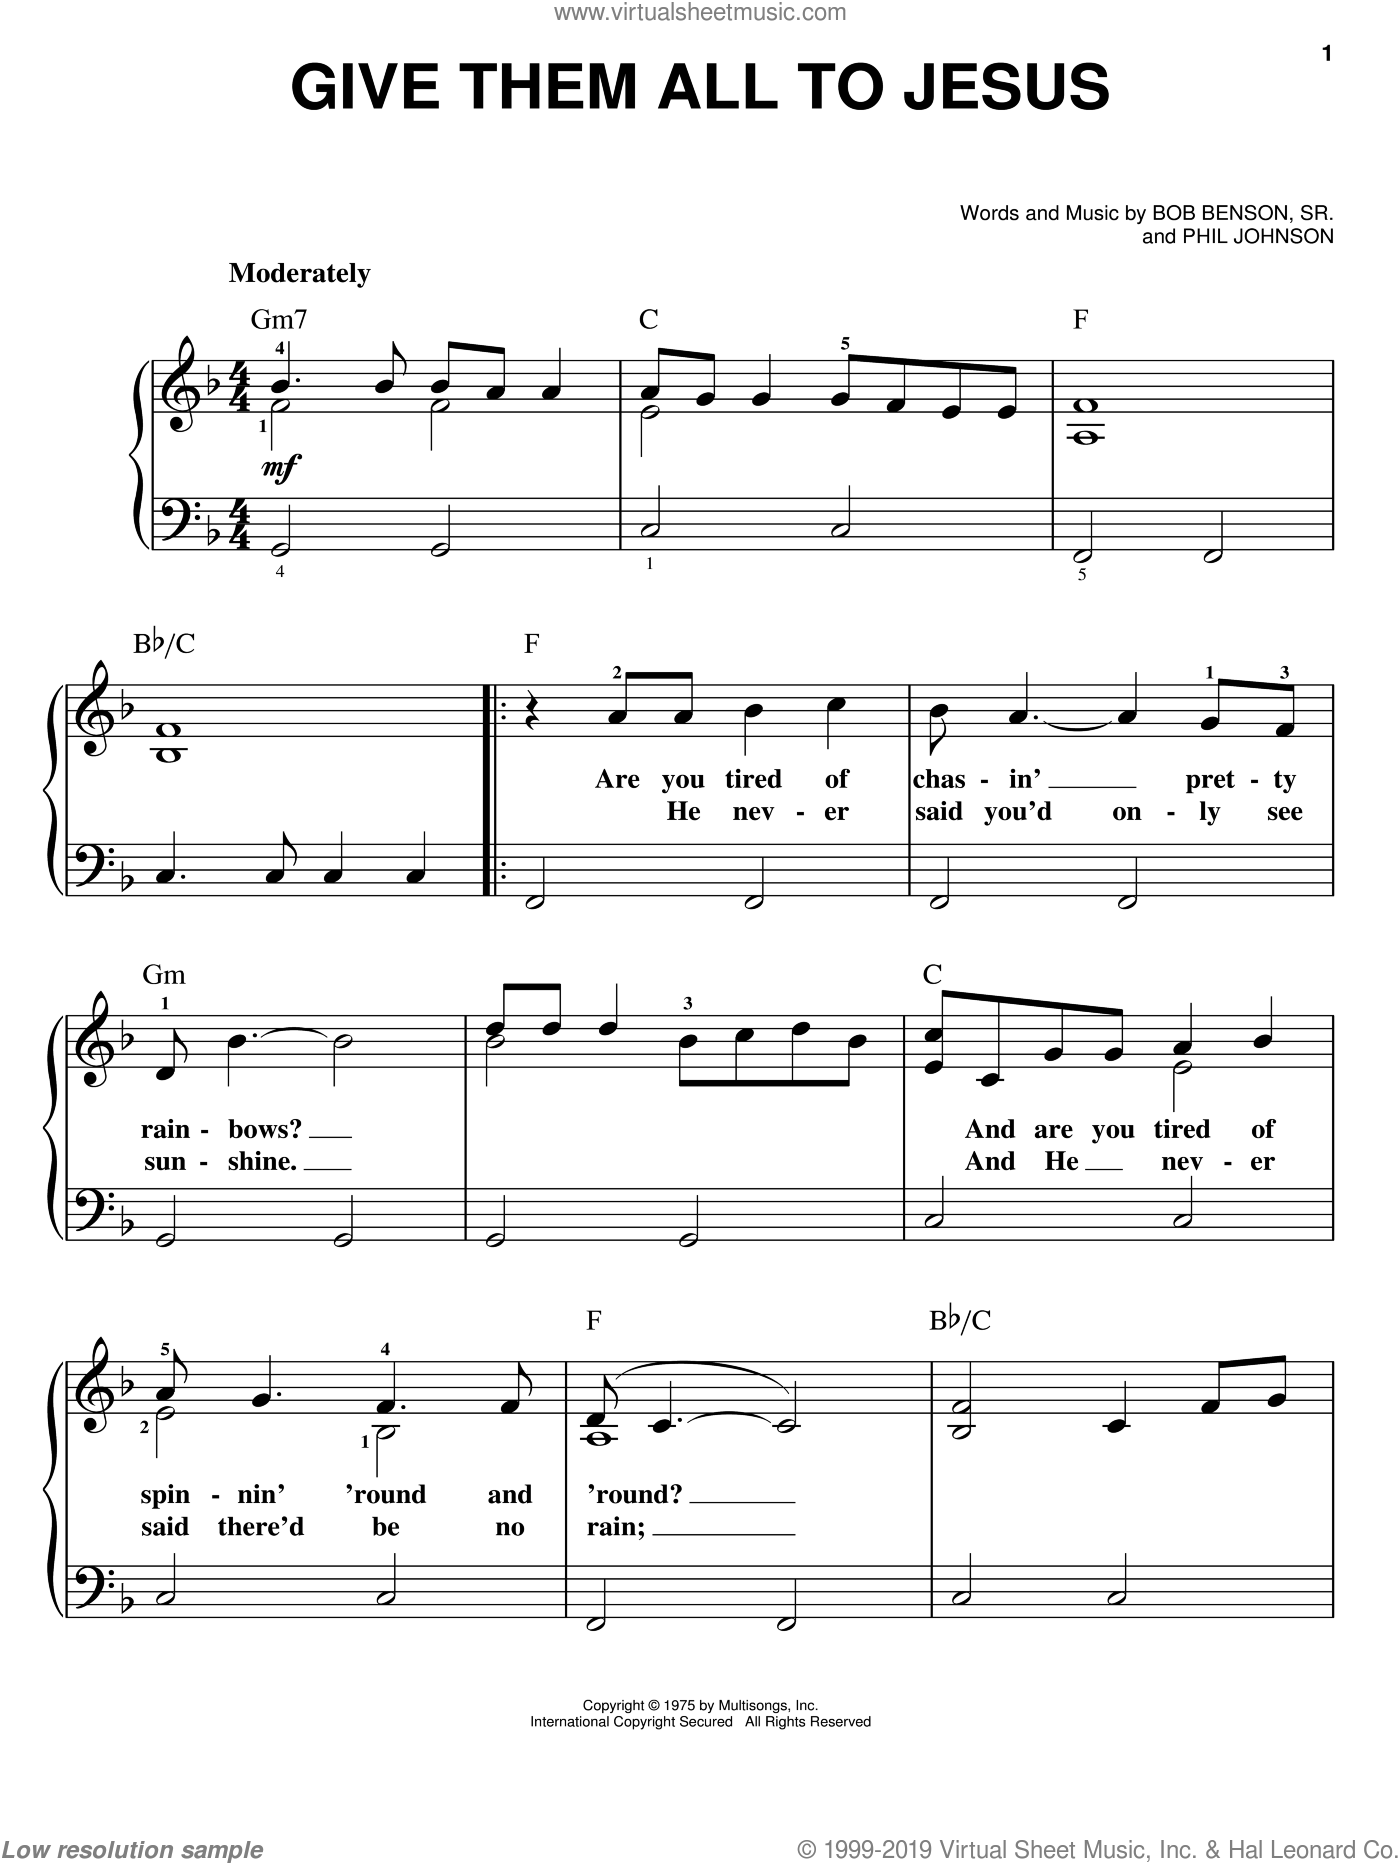 Give Them All To Jesus sheet music for piano solo (chords) by Phil Johnson